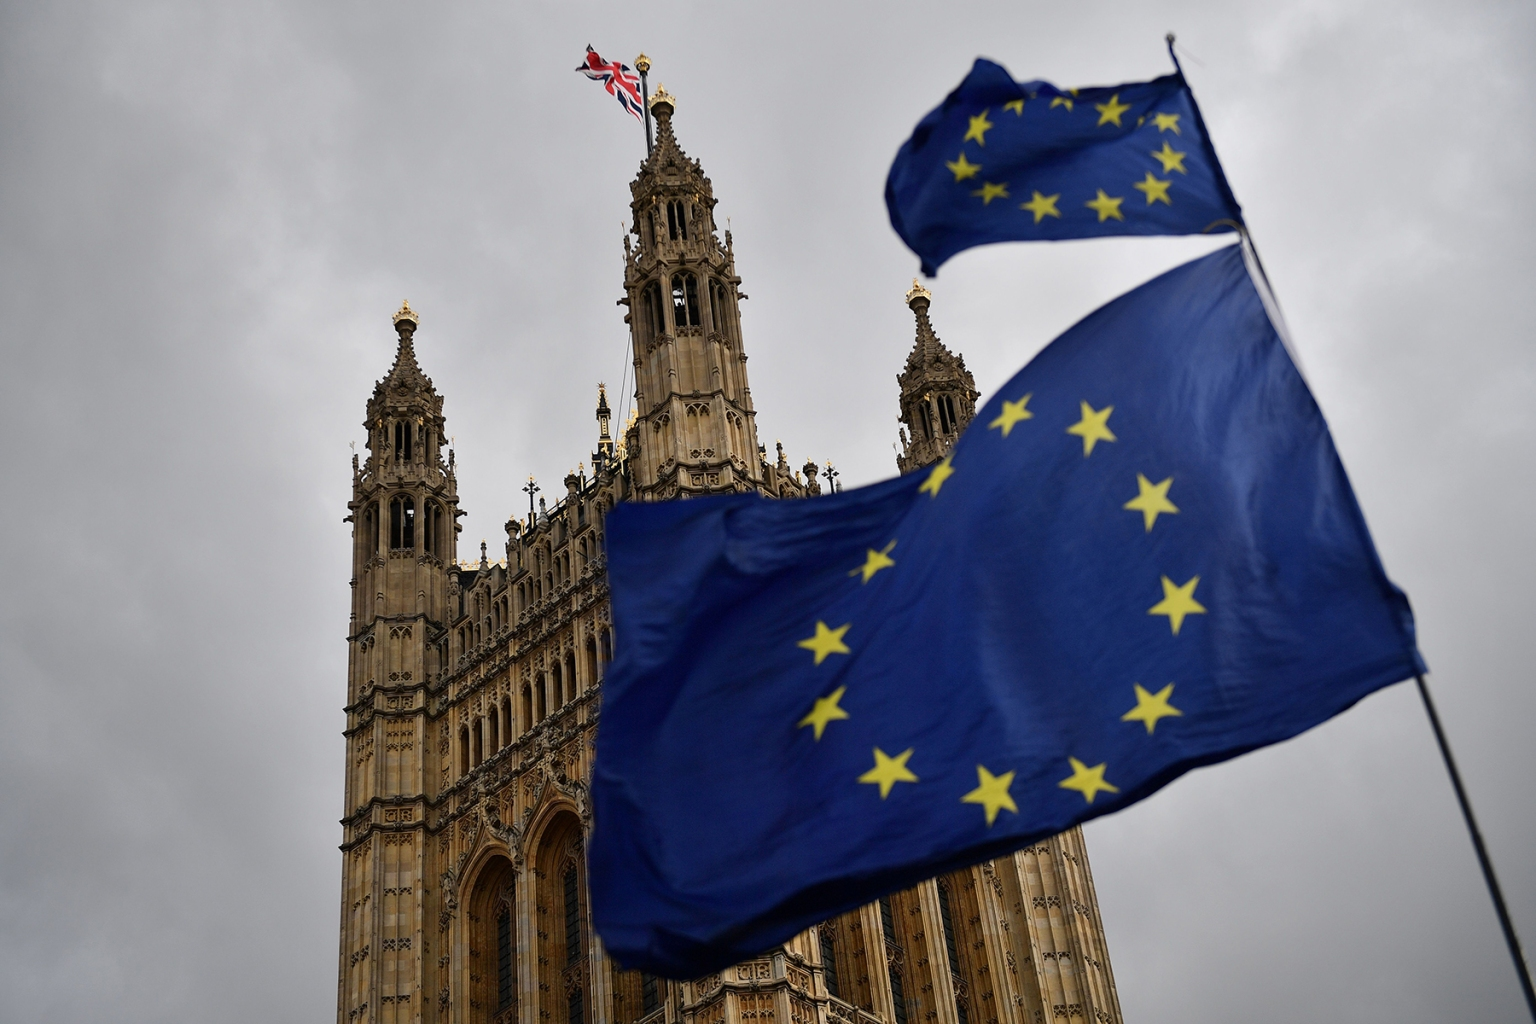 The Union flag flies atop the Houses of Parliament as Brexit demonstrators wave European Union flags in central London on April 4. DANIEL LEAL-OLIVAS/AFP/Getty Images)